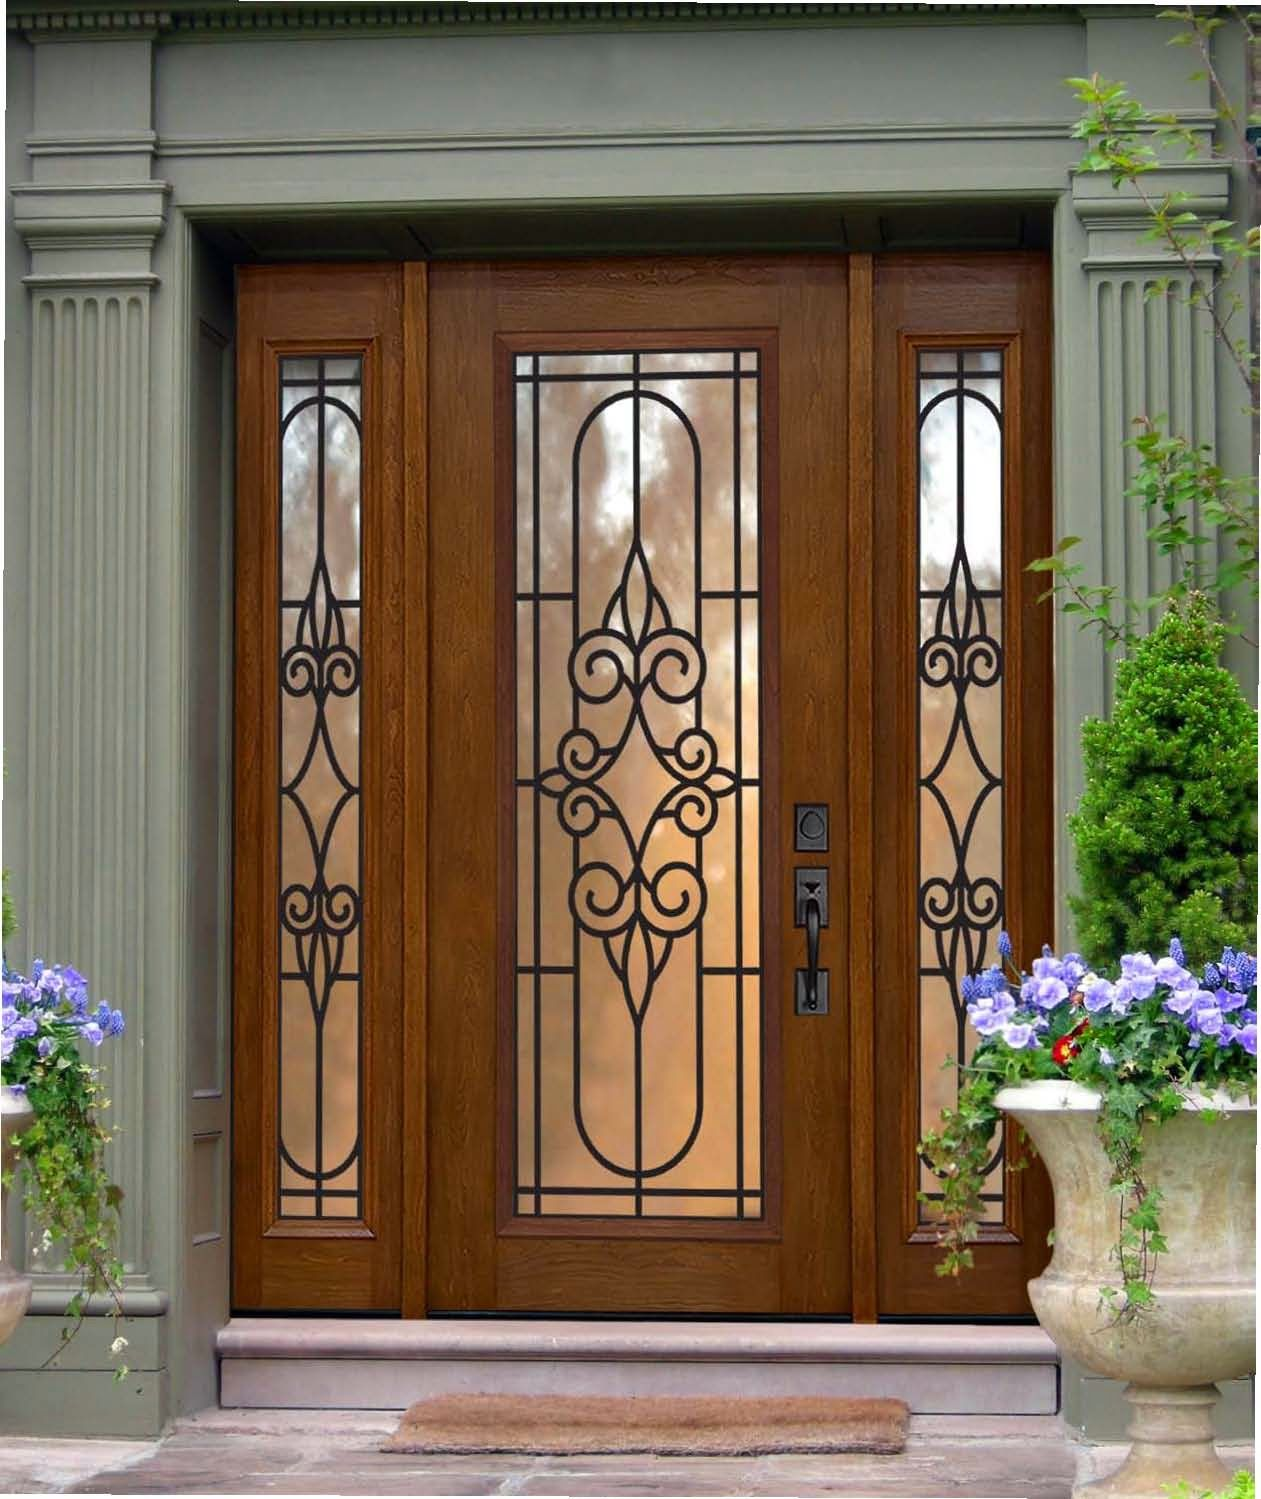 Generally People Have One Sidelight On One Side Of The Entry Door